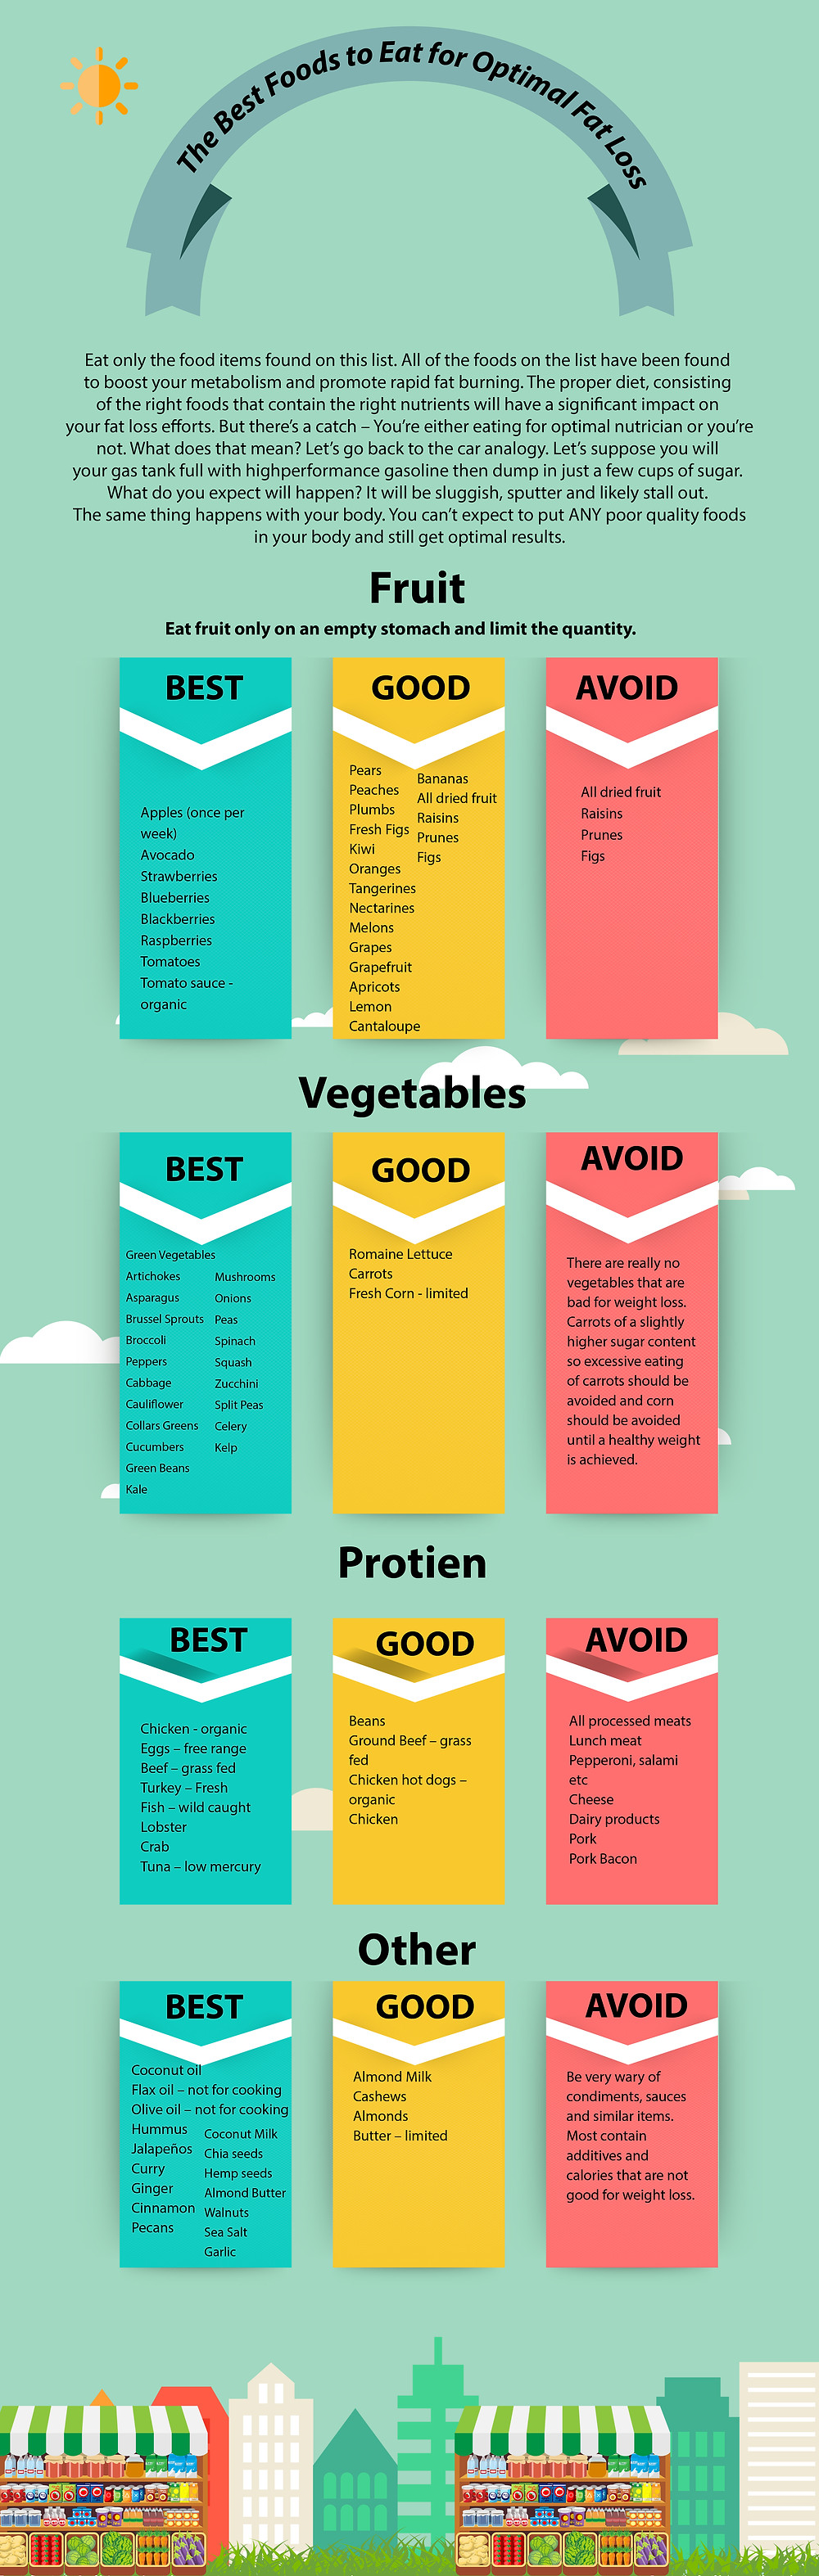 best foods to eat right